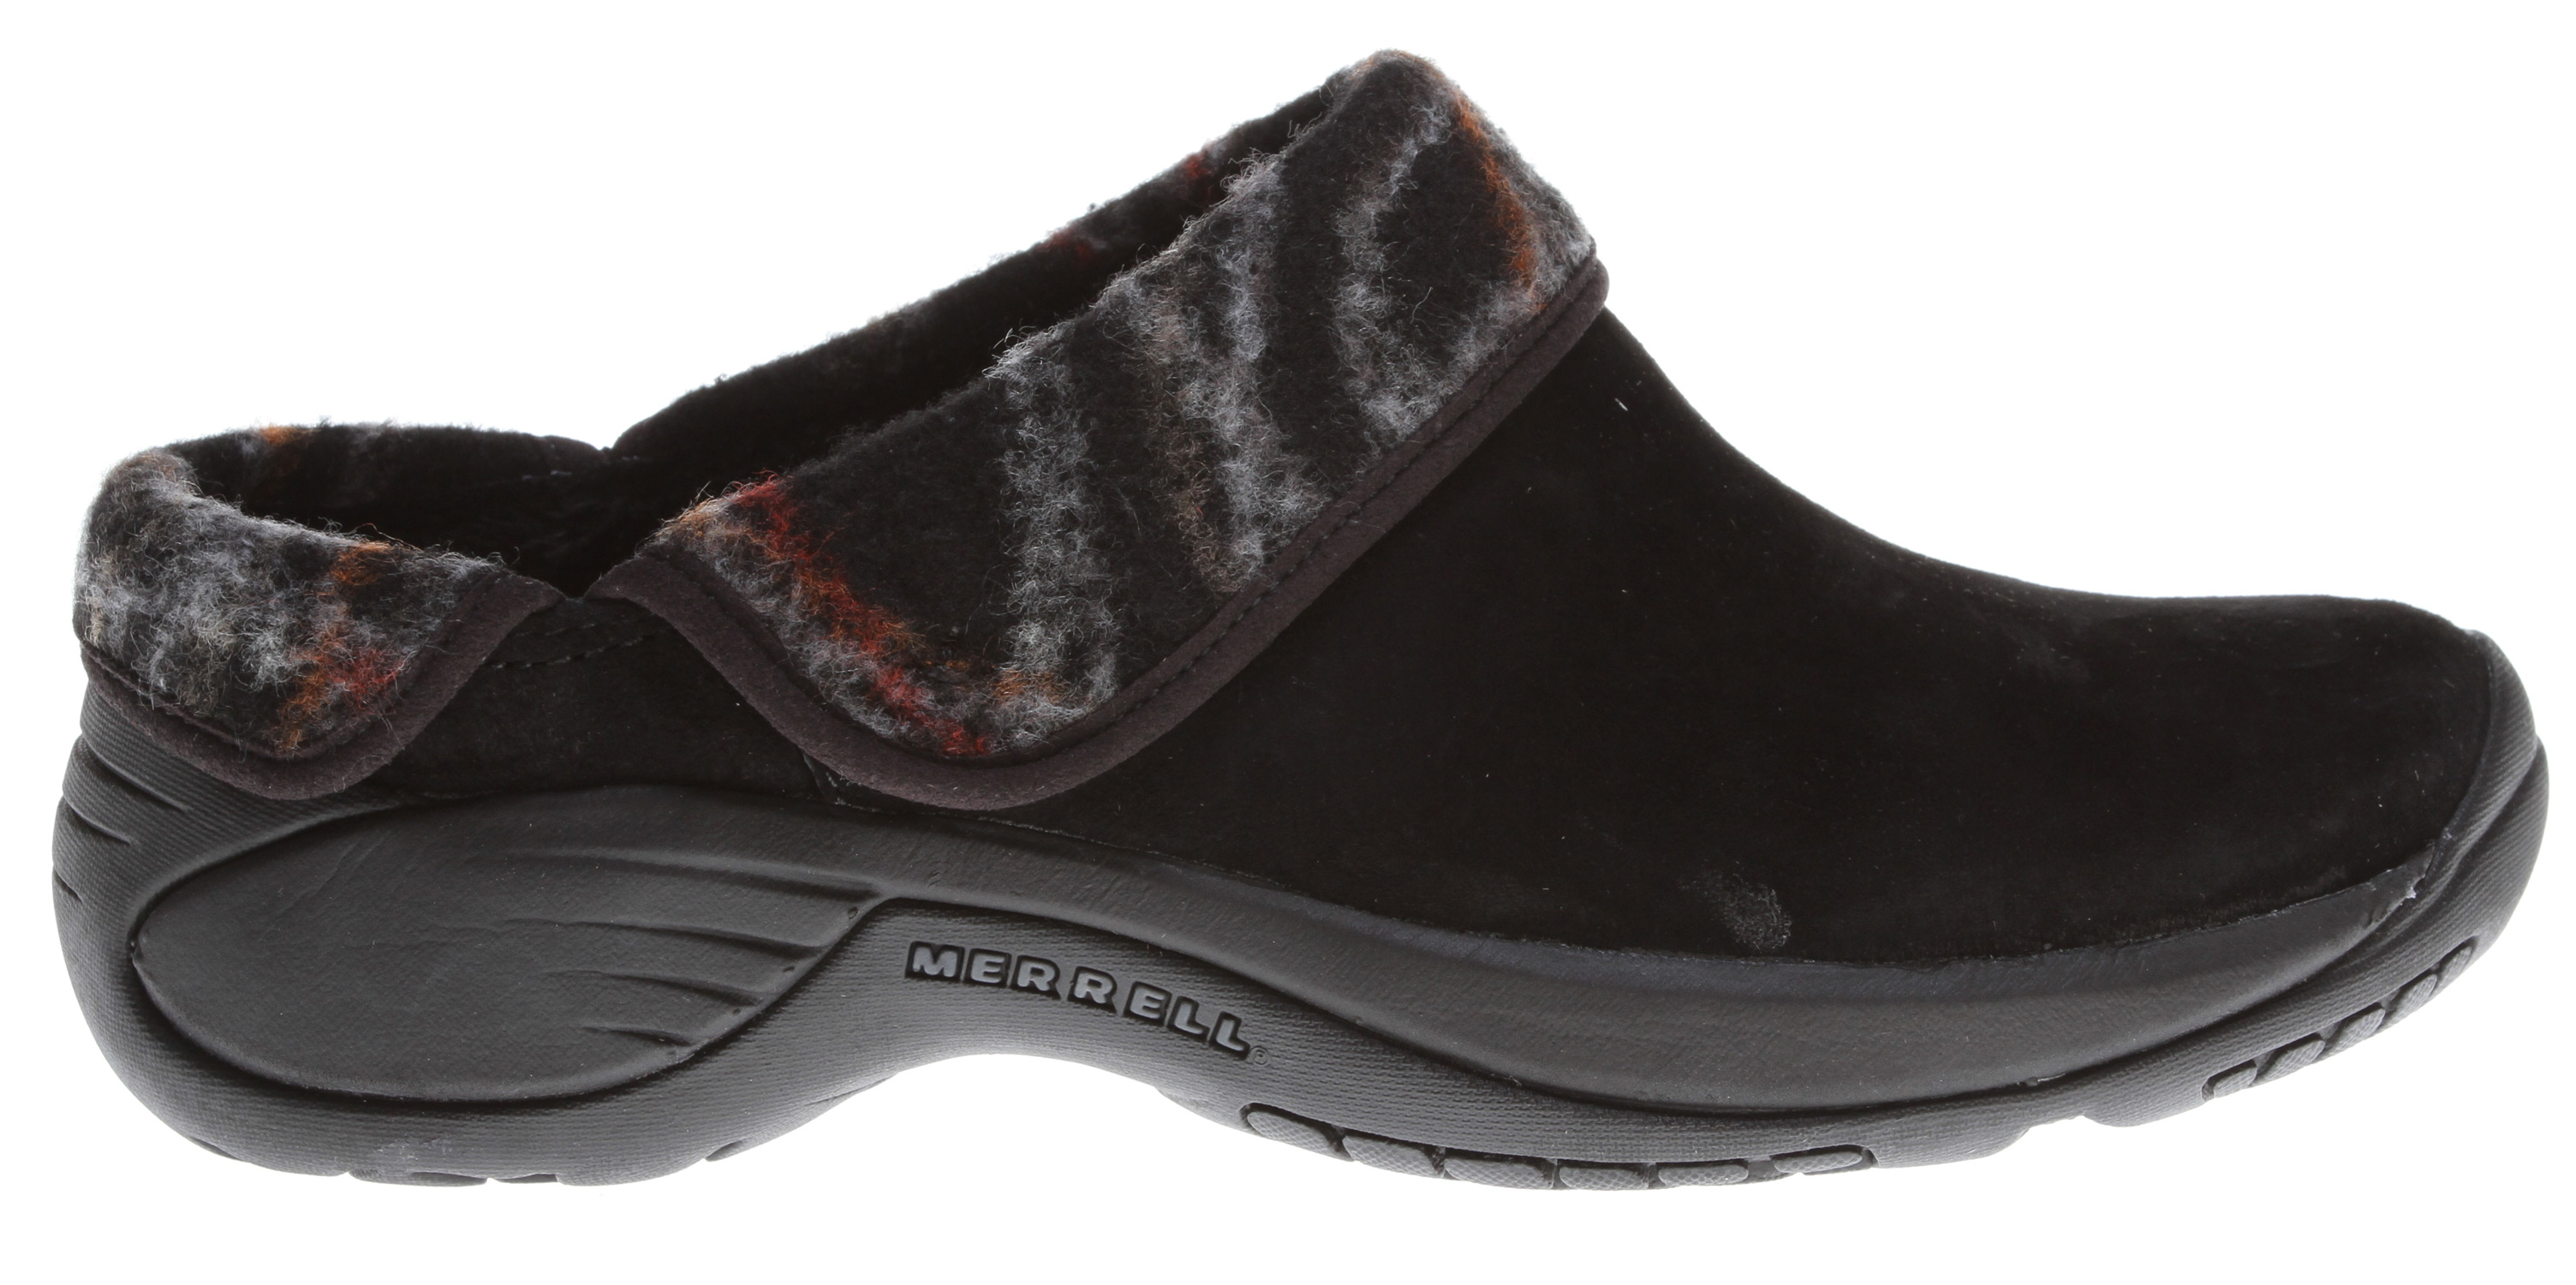 Savor every step in this slip on clog - simple, woolly and warm walking comfort for winter. Ever faithful, ever versatile Encore walking comfort with women's stride-specific Q-Form Comfort cushioning feels flexible yet supportive all day. With the cozy faux-fur lining and wool/suede, breathable upper, you'll be the happiest person hoofing it around town.Key Features of the Merrell Encore Ripple Shoes: Strobel construction offers flexibility and comfort Wool and suede leather upper DWR-treated wool repels water and resists staining Breathable faux fur lining treated with Aegis antimicrobial solution resists odor Molded nylon arch shank Ortholite anatomical footbed Molded nylon arch shank Merrell Qform comfort EVA midsole provides women's specific stride-sequenced cushioning Merrell air cushion in the heel absorbs shock and adds stability Merrell Encore 2 Sole/Sticky Rubber Women's Weight: 1 lb 1 oz - $80.00